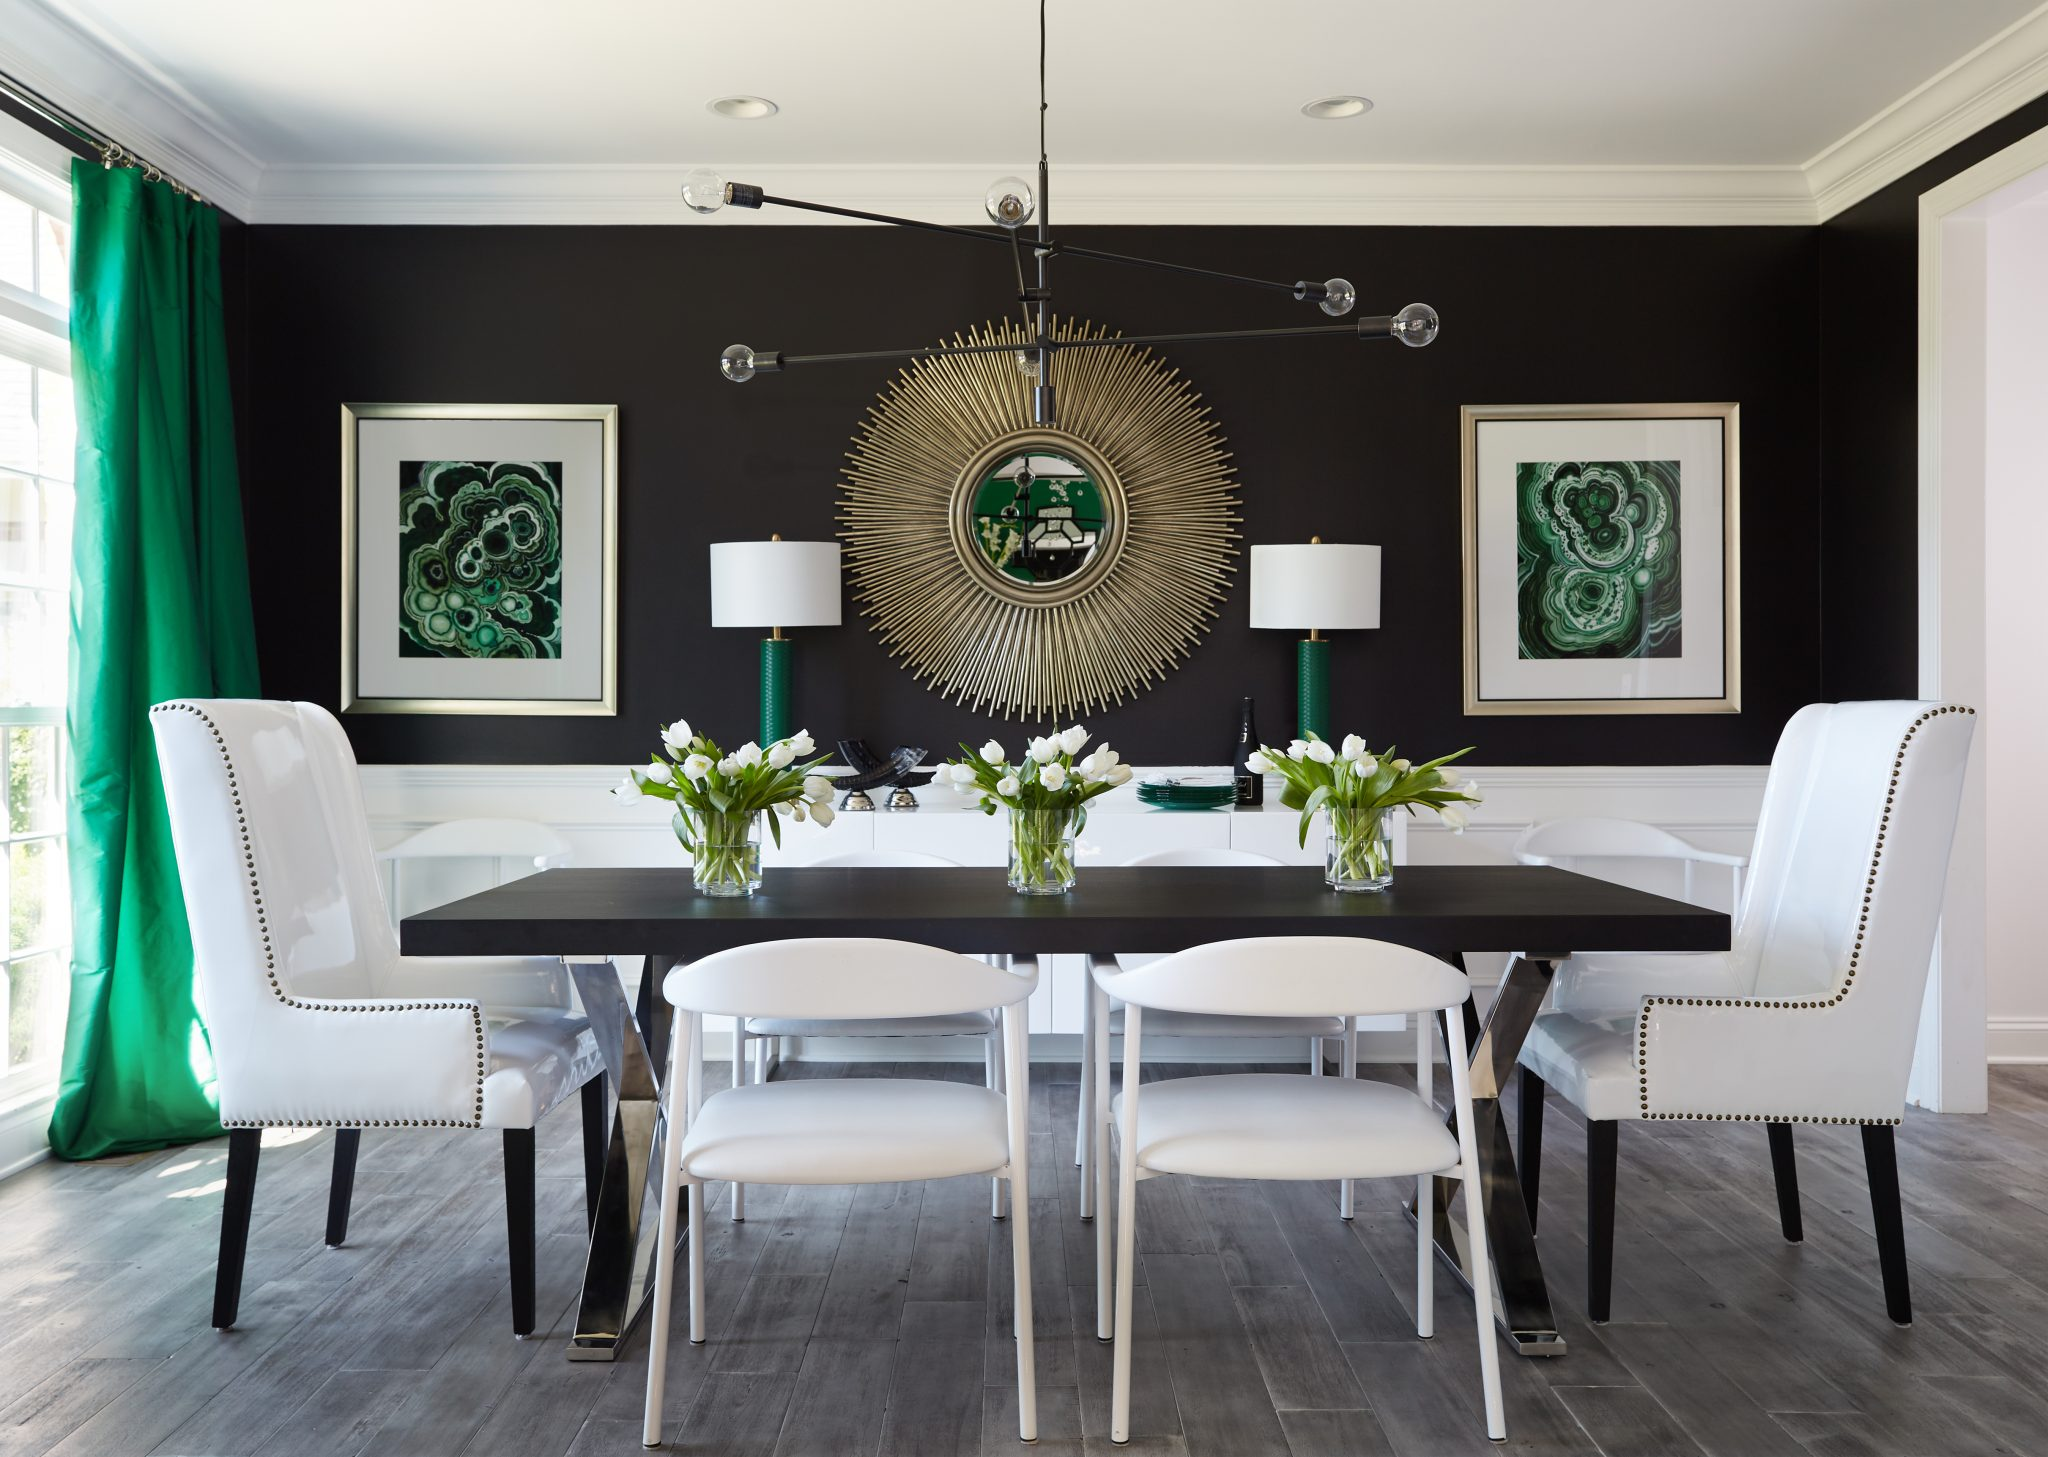 White furniture offers a strong contrast to black walls in the dining room.